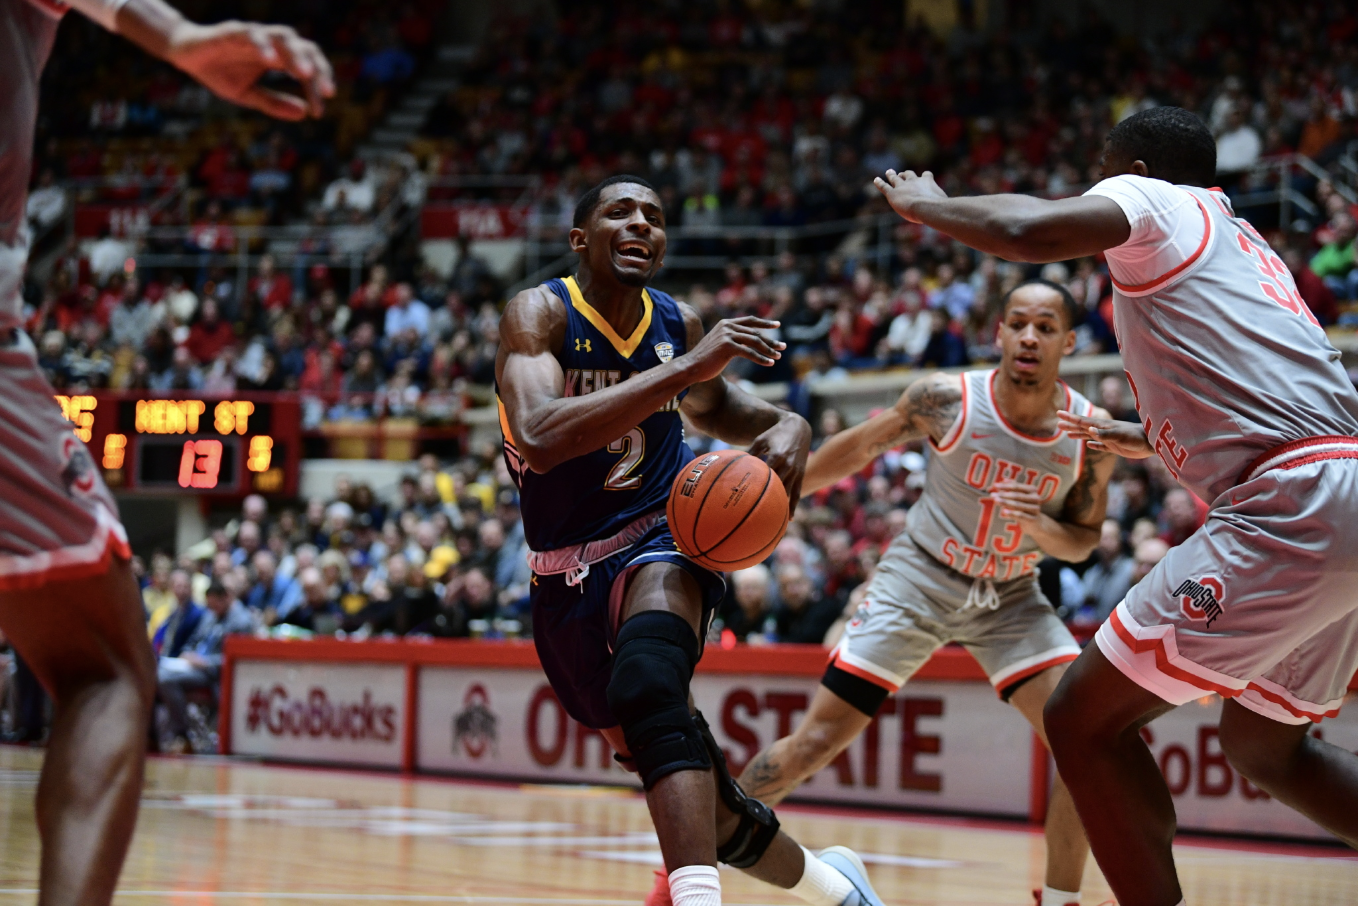 Flashes Second Half Run Not Enough Against Buckeyes Kent